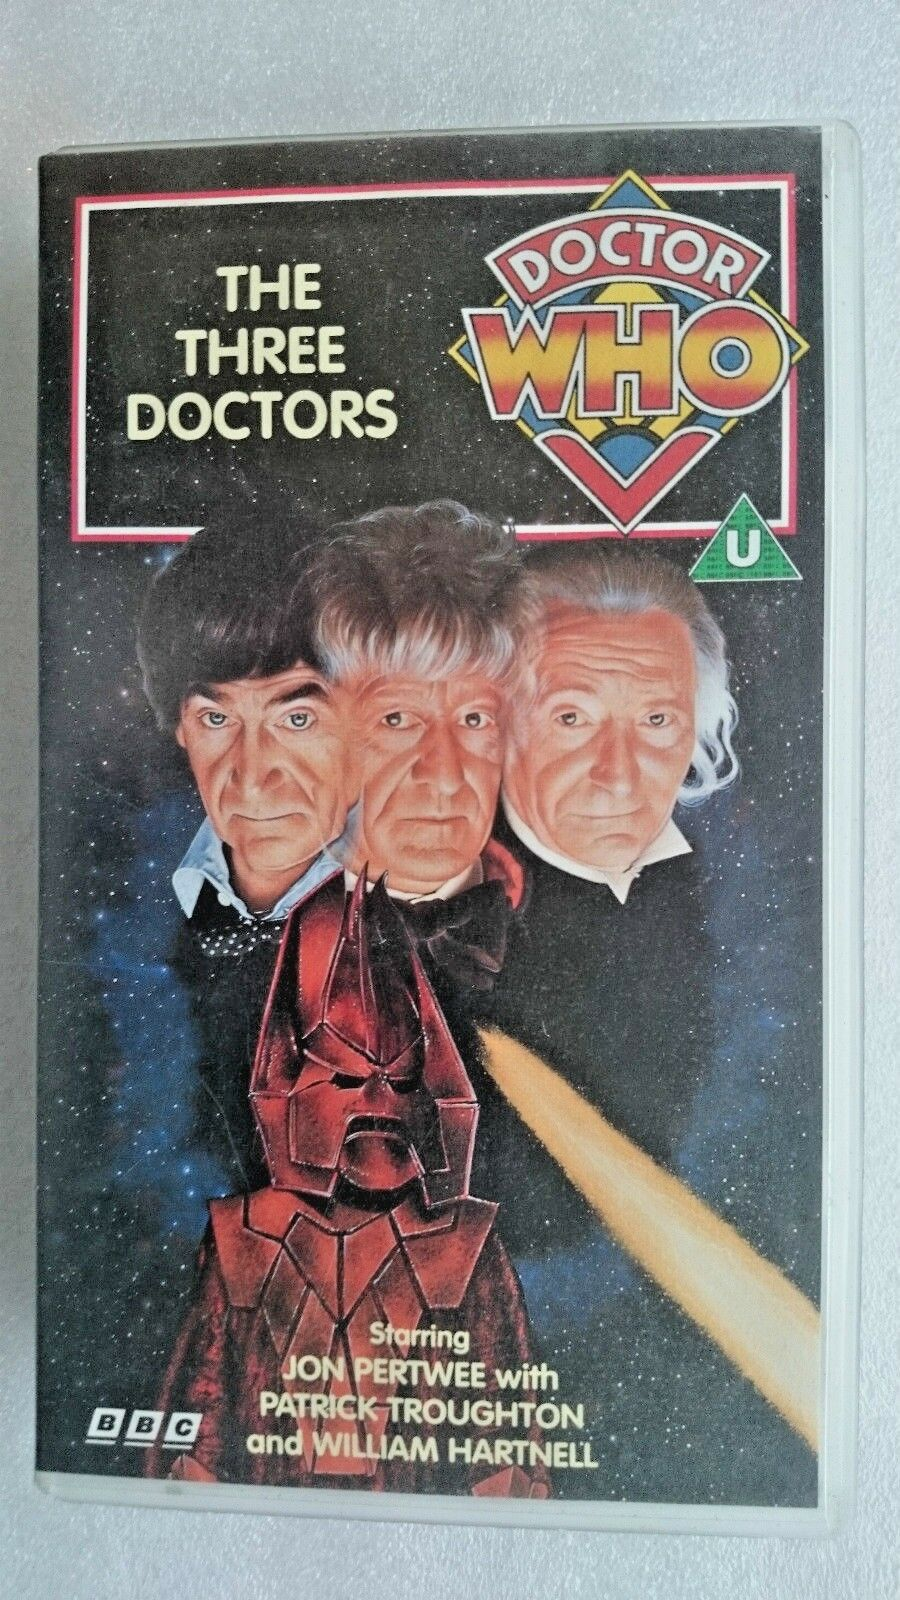 Doctor Who - The Three Doctors (VHS, 1991) - Jon Pertwee